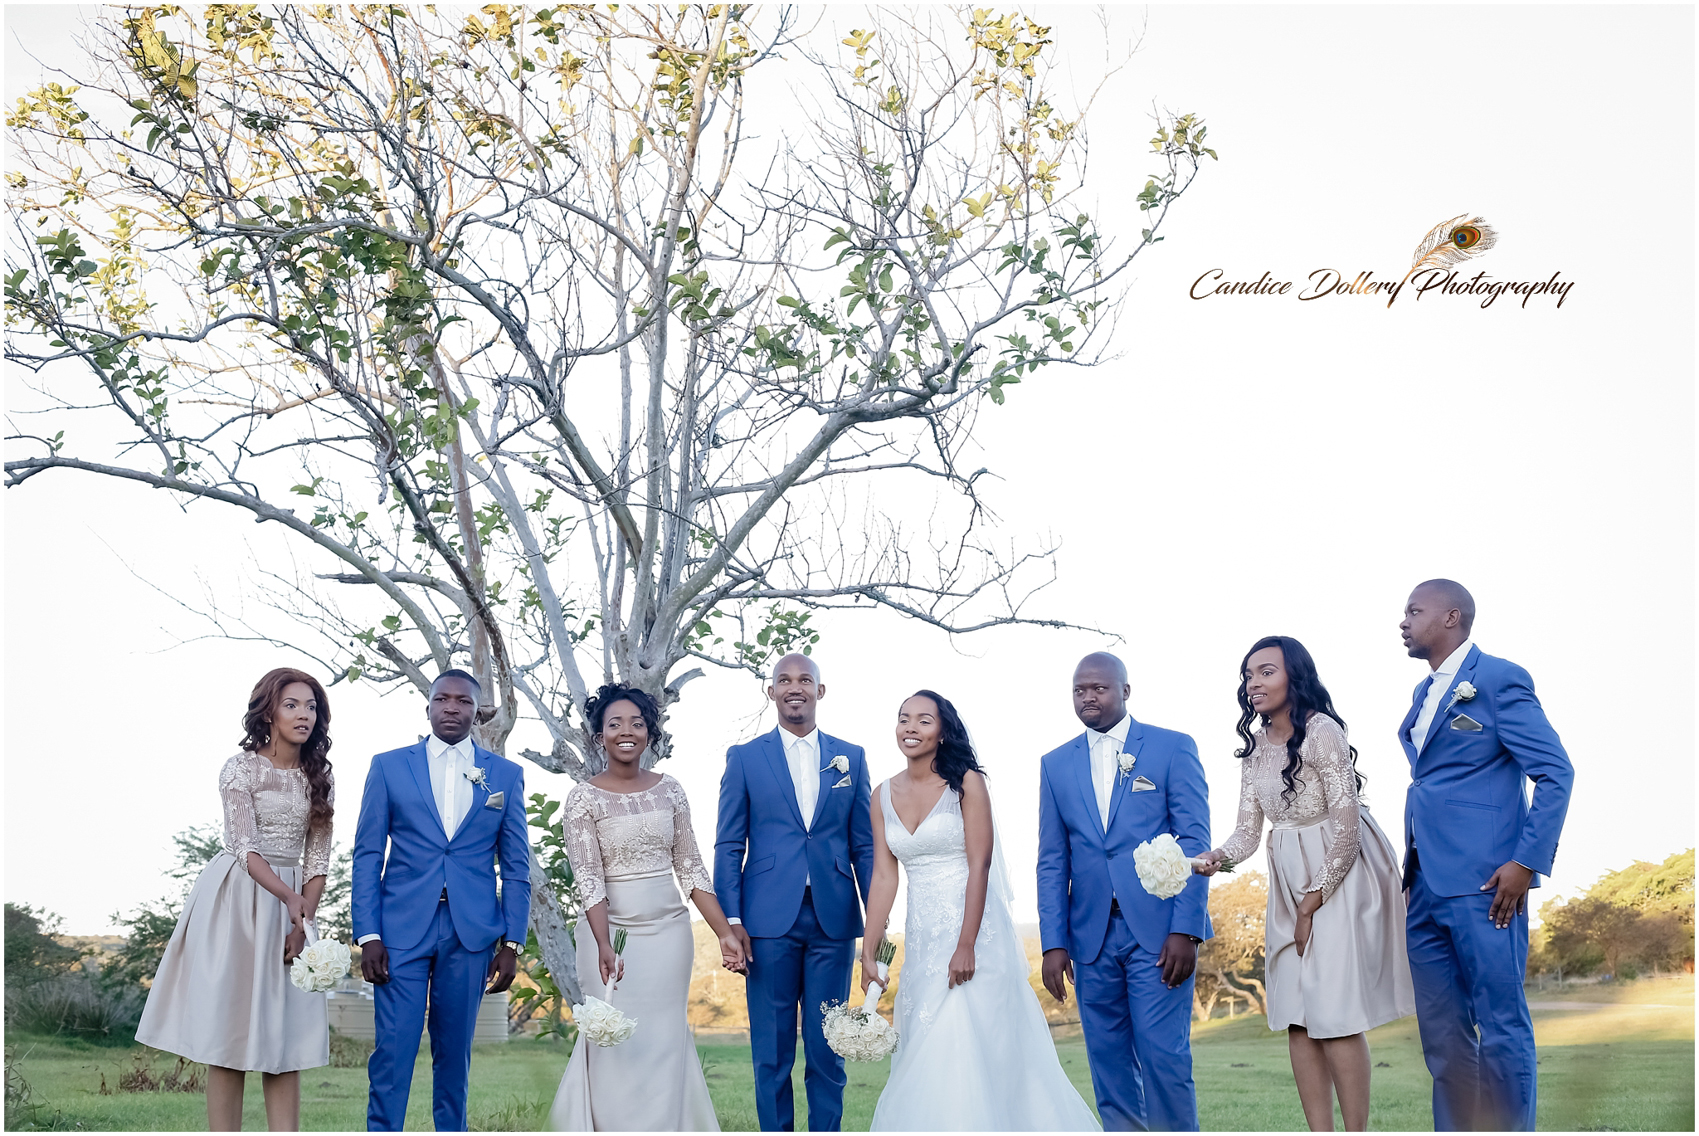 lelethu-kgotsos-wedding-candice-dollery-photography_1669